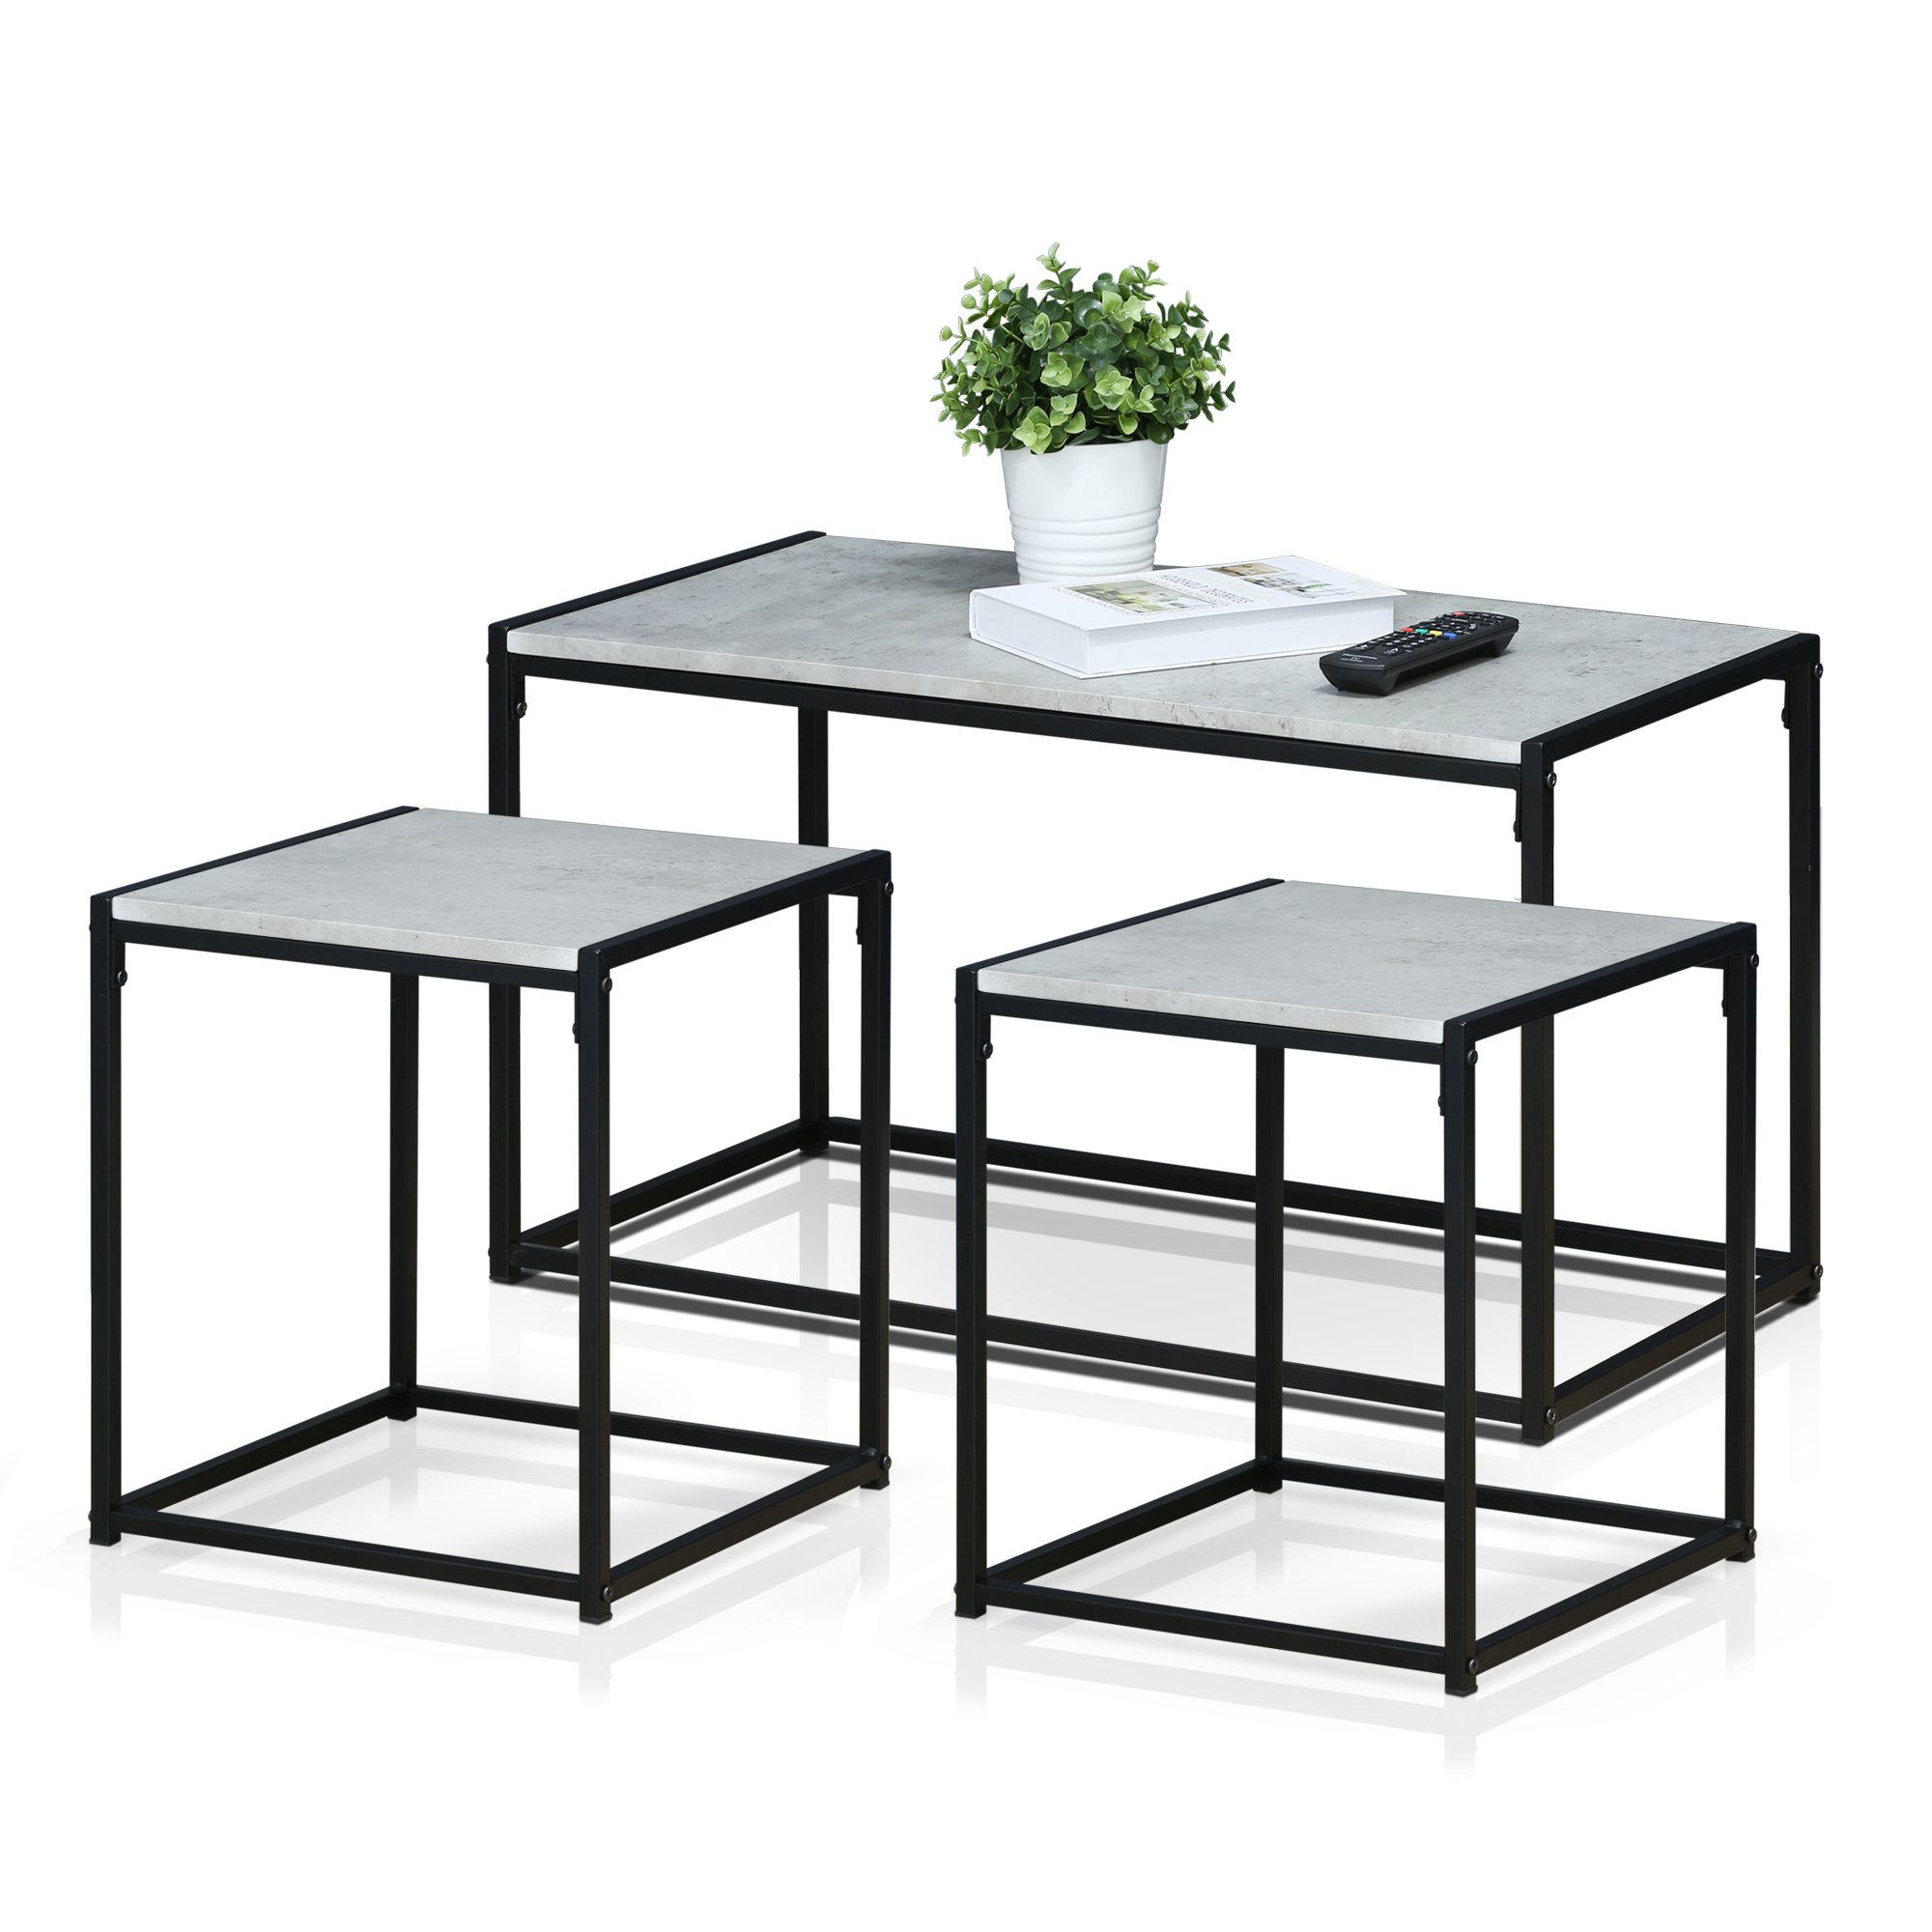 Furinno FM-TS31SW Modern Lifestyle Living Room Set, Stone White by Furinno